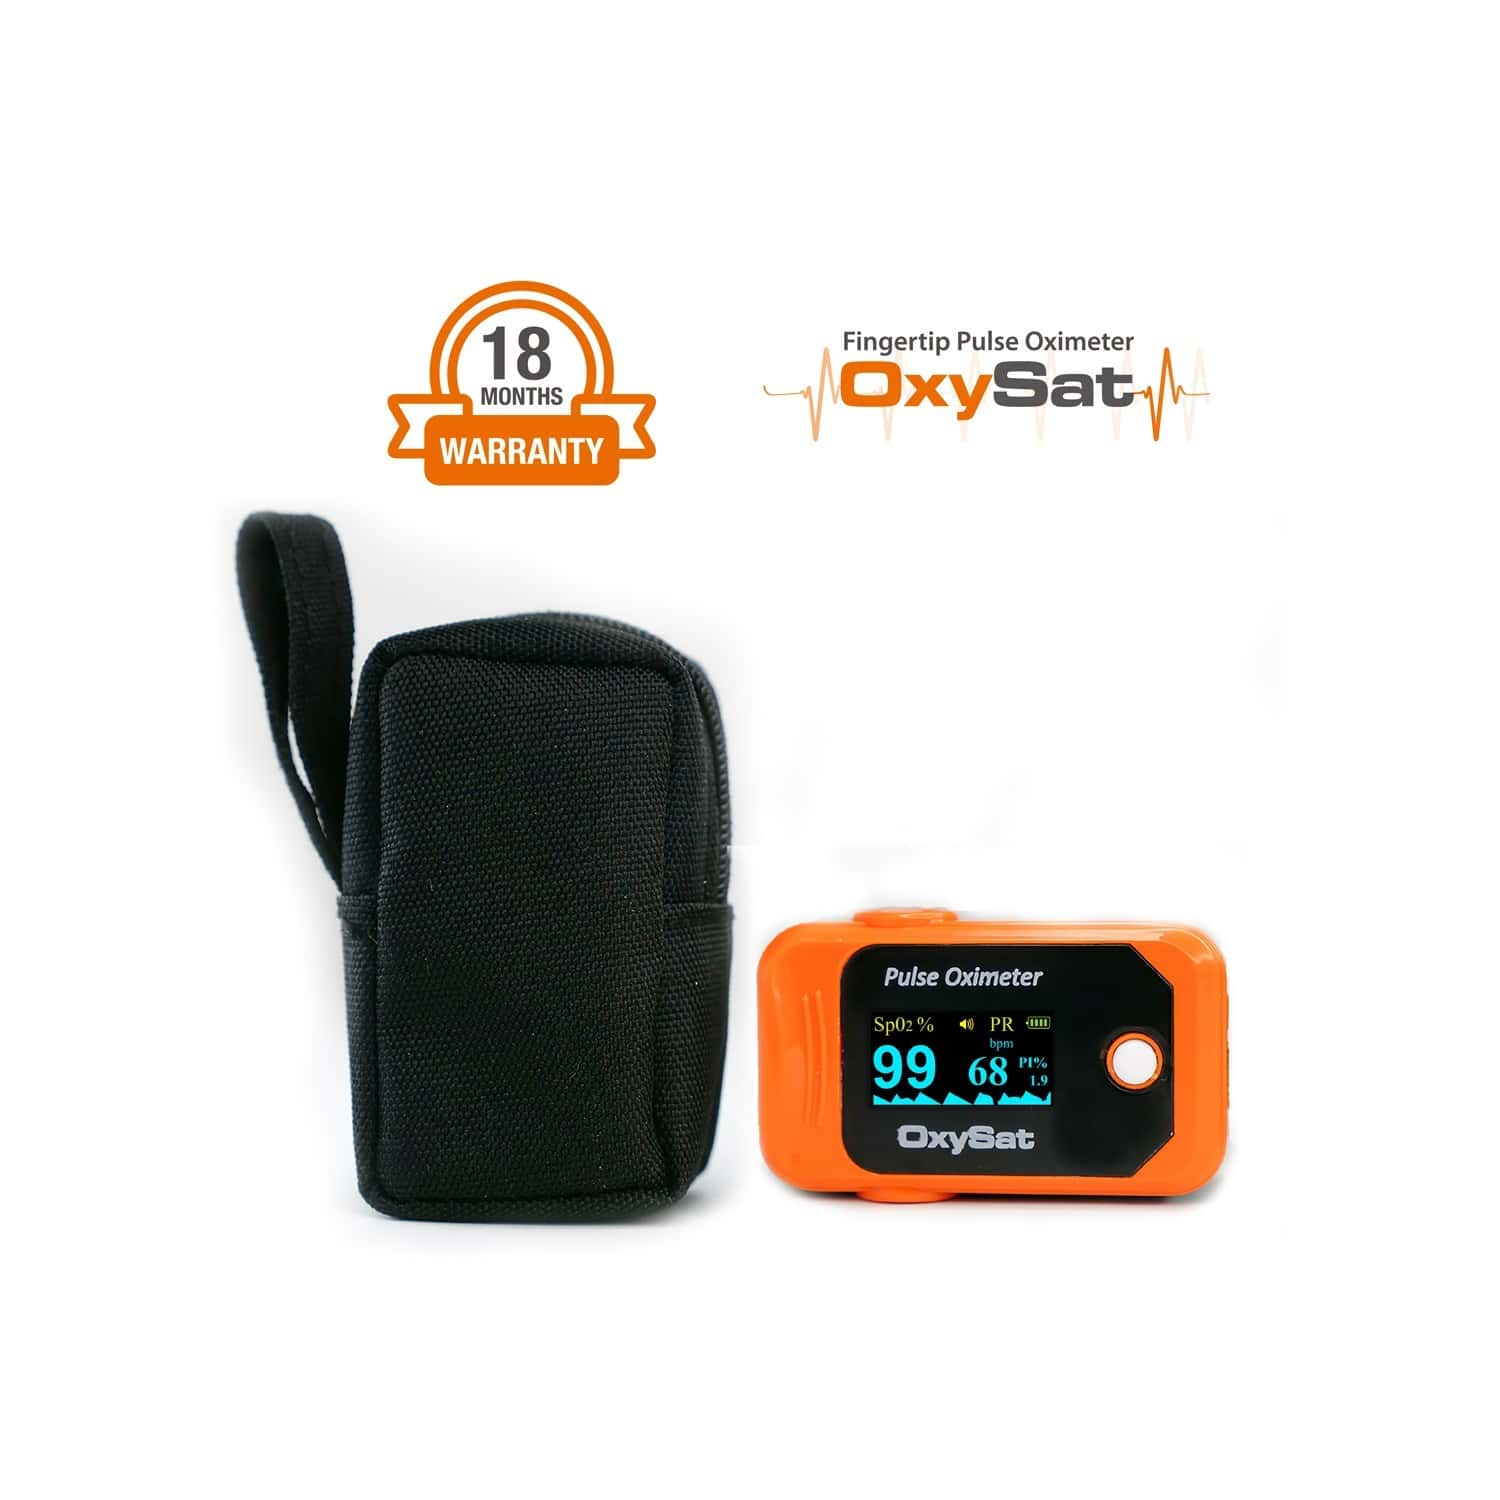 Oxysat Fingertip Pulse Oximeter With Spo2 Perfusion Index And Oleds Display